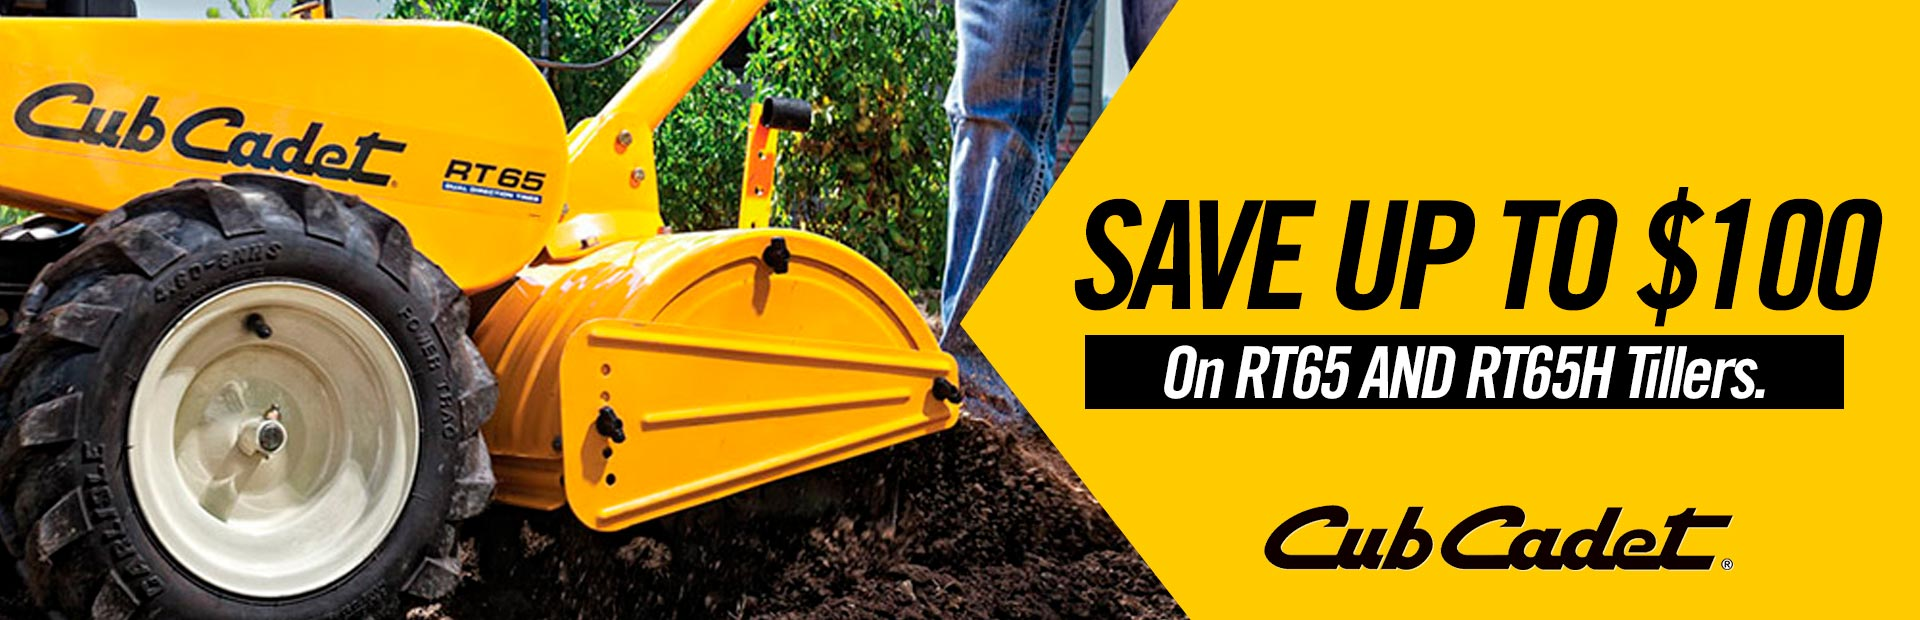 SAVE $100 on RT65 AND RT65H Tillers